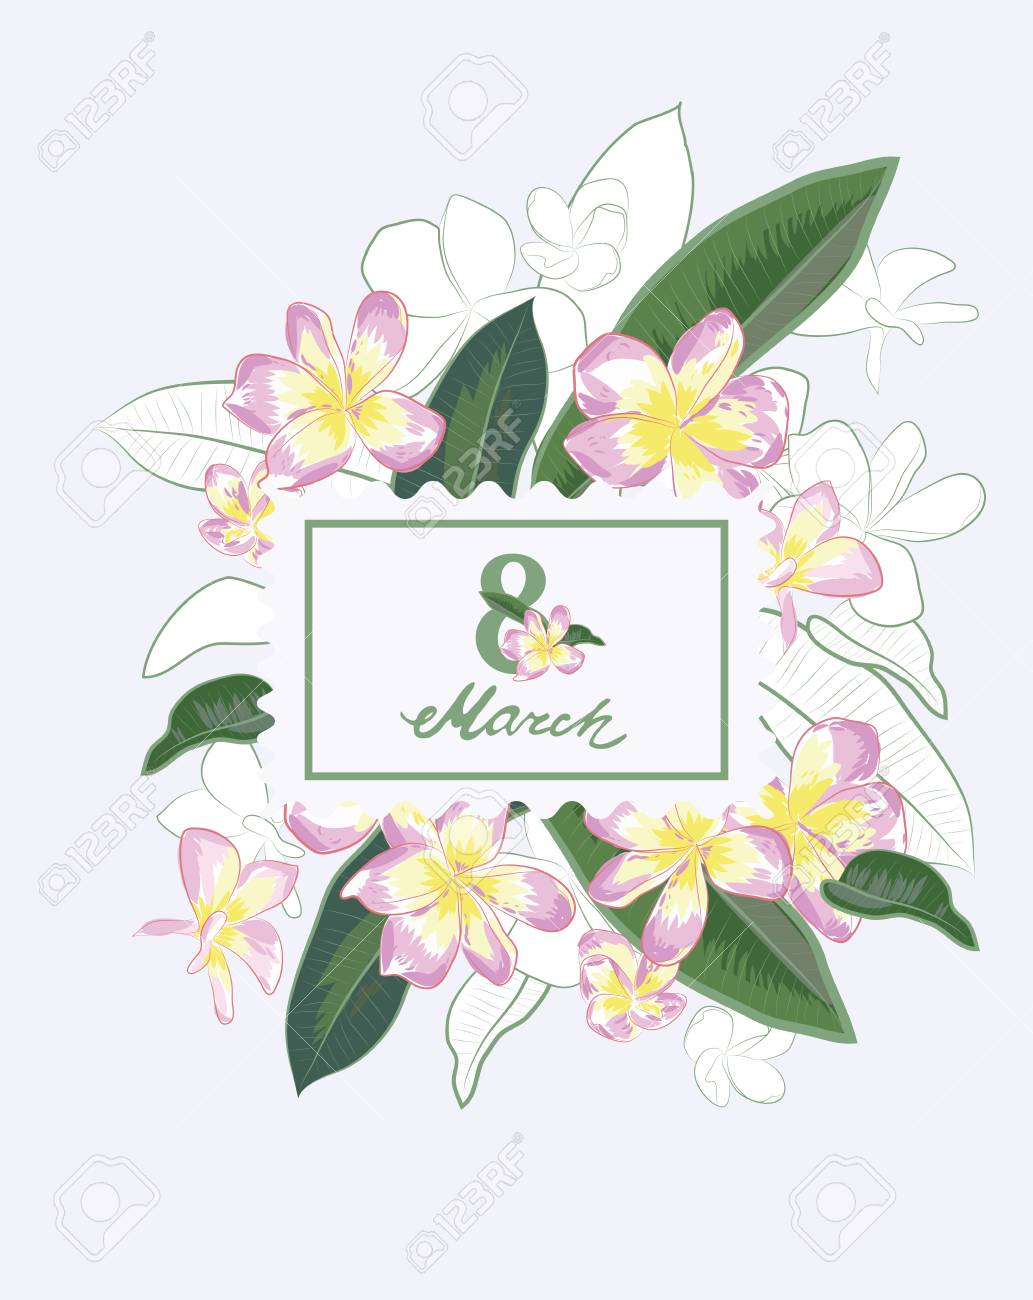 Plumeria Clipart : plumeria, clipart, Abstract, Flower, Spring, Illustration., Plumeria, Flowers, Royalty, Cliparts,, Vectors,, Stock, Image, 71548080.